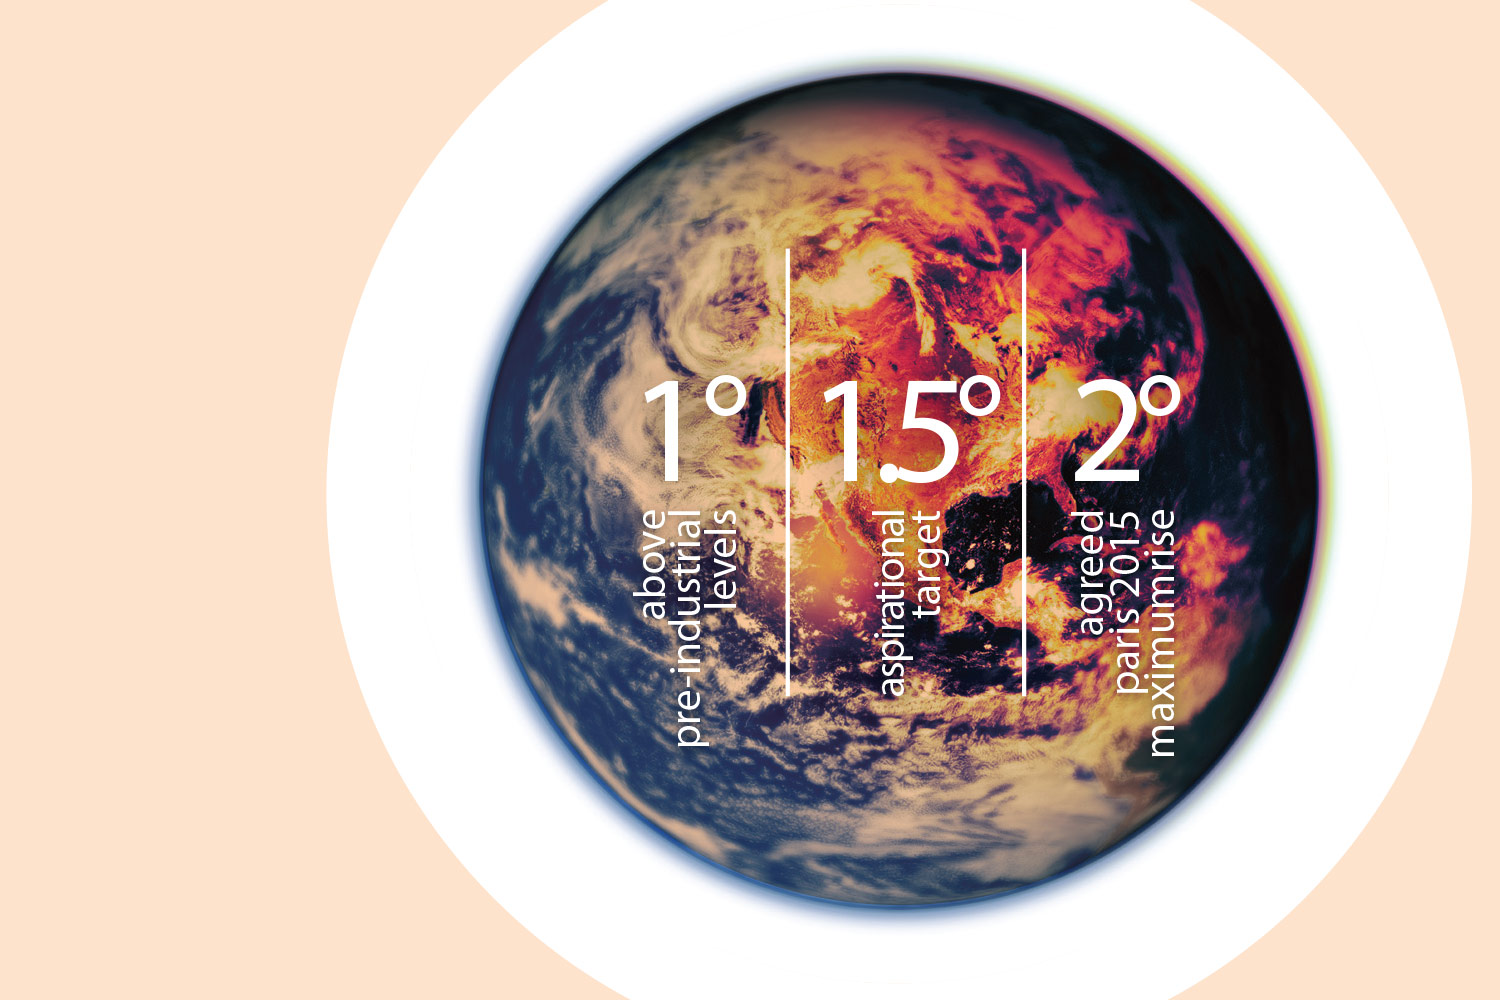 Illustration of the climate emergency that requires sustainable energy solutions